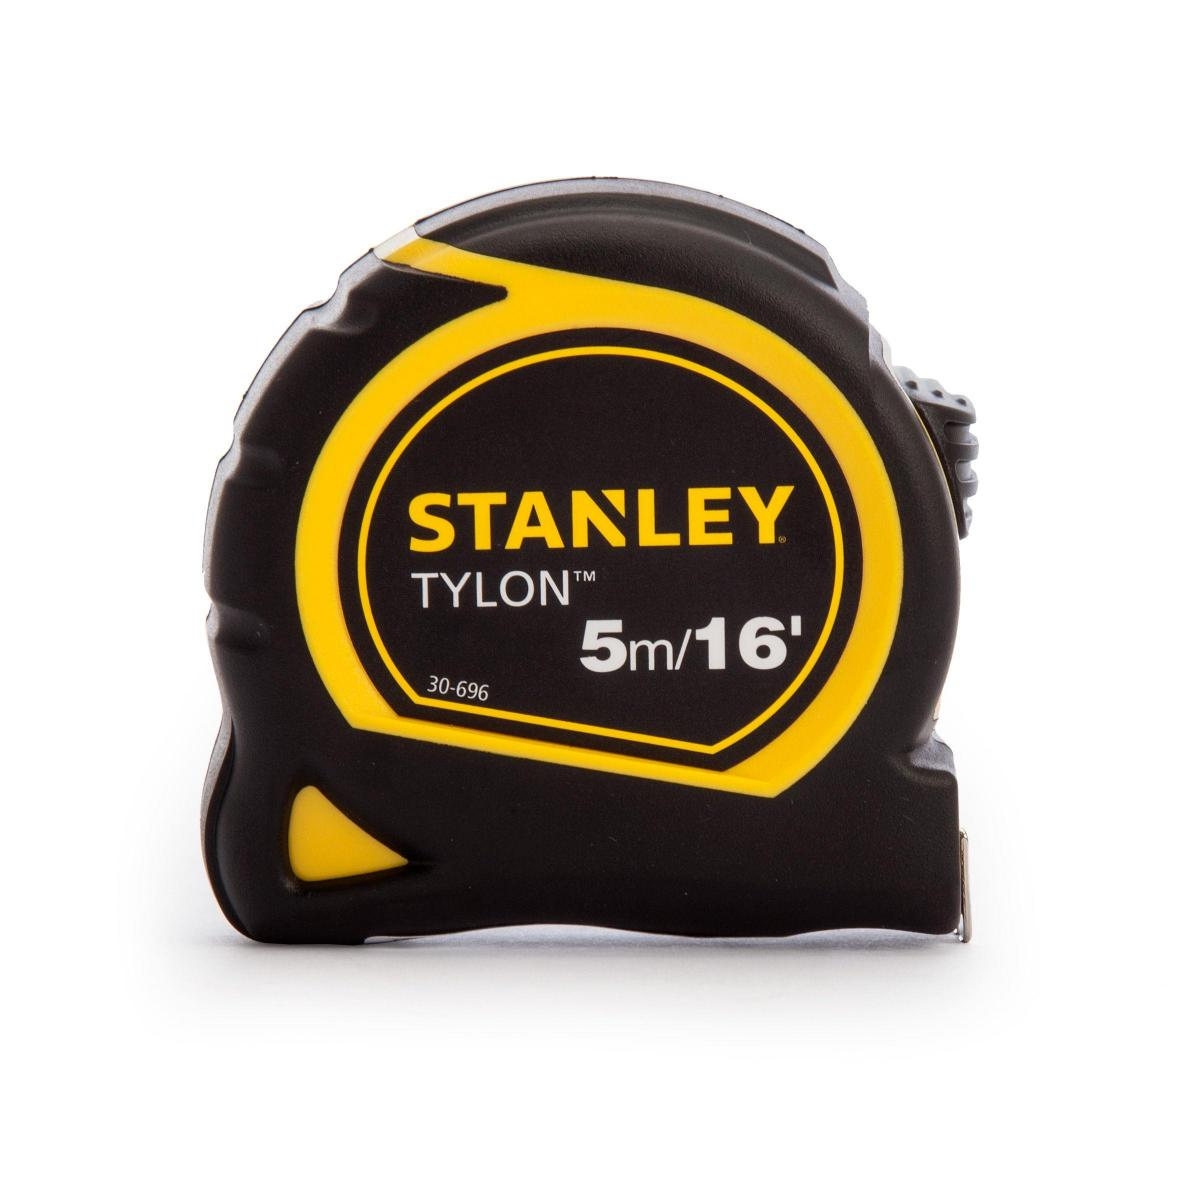 5m Tylon Measuring Tape – Now Only £5.00